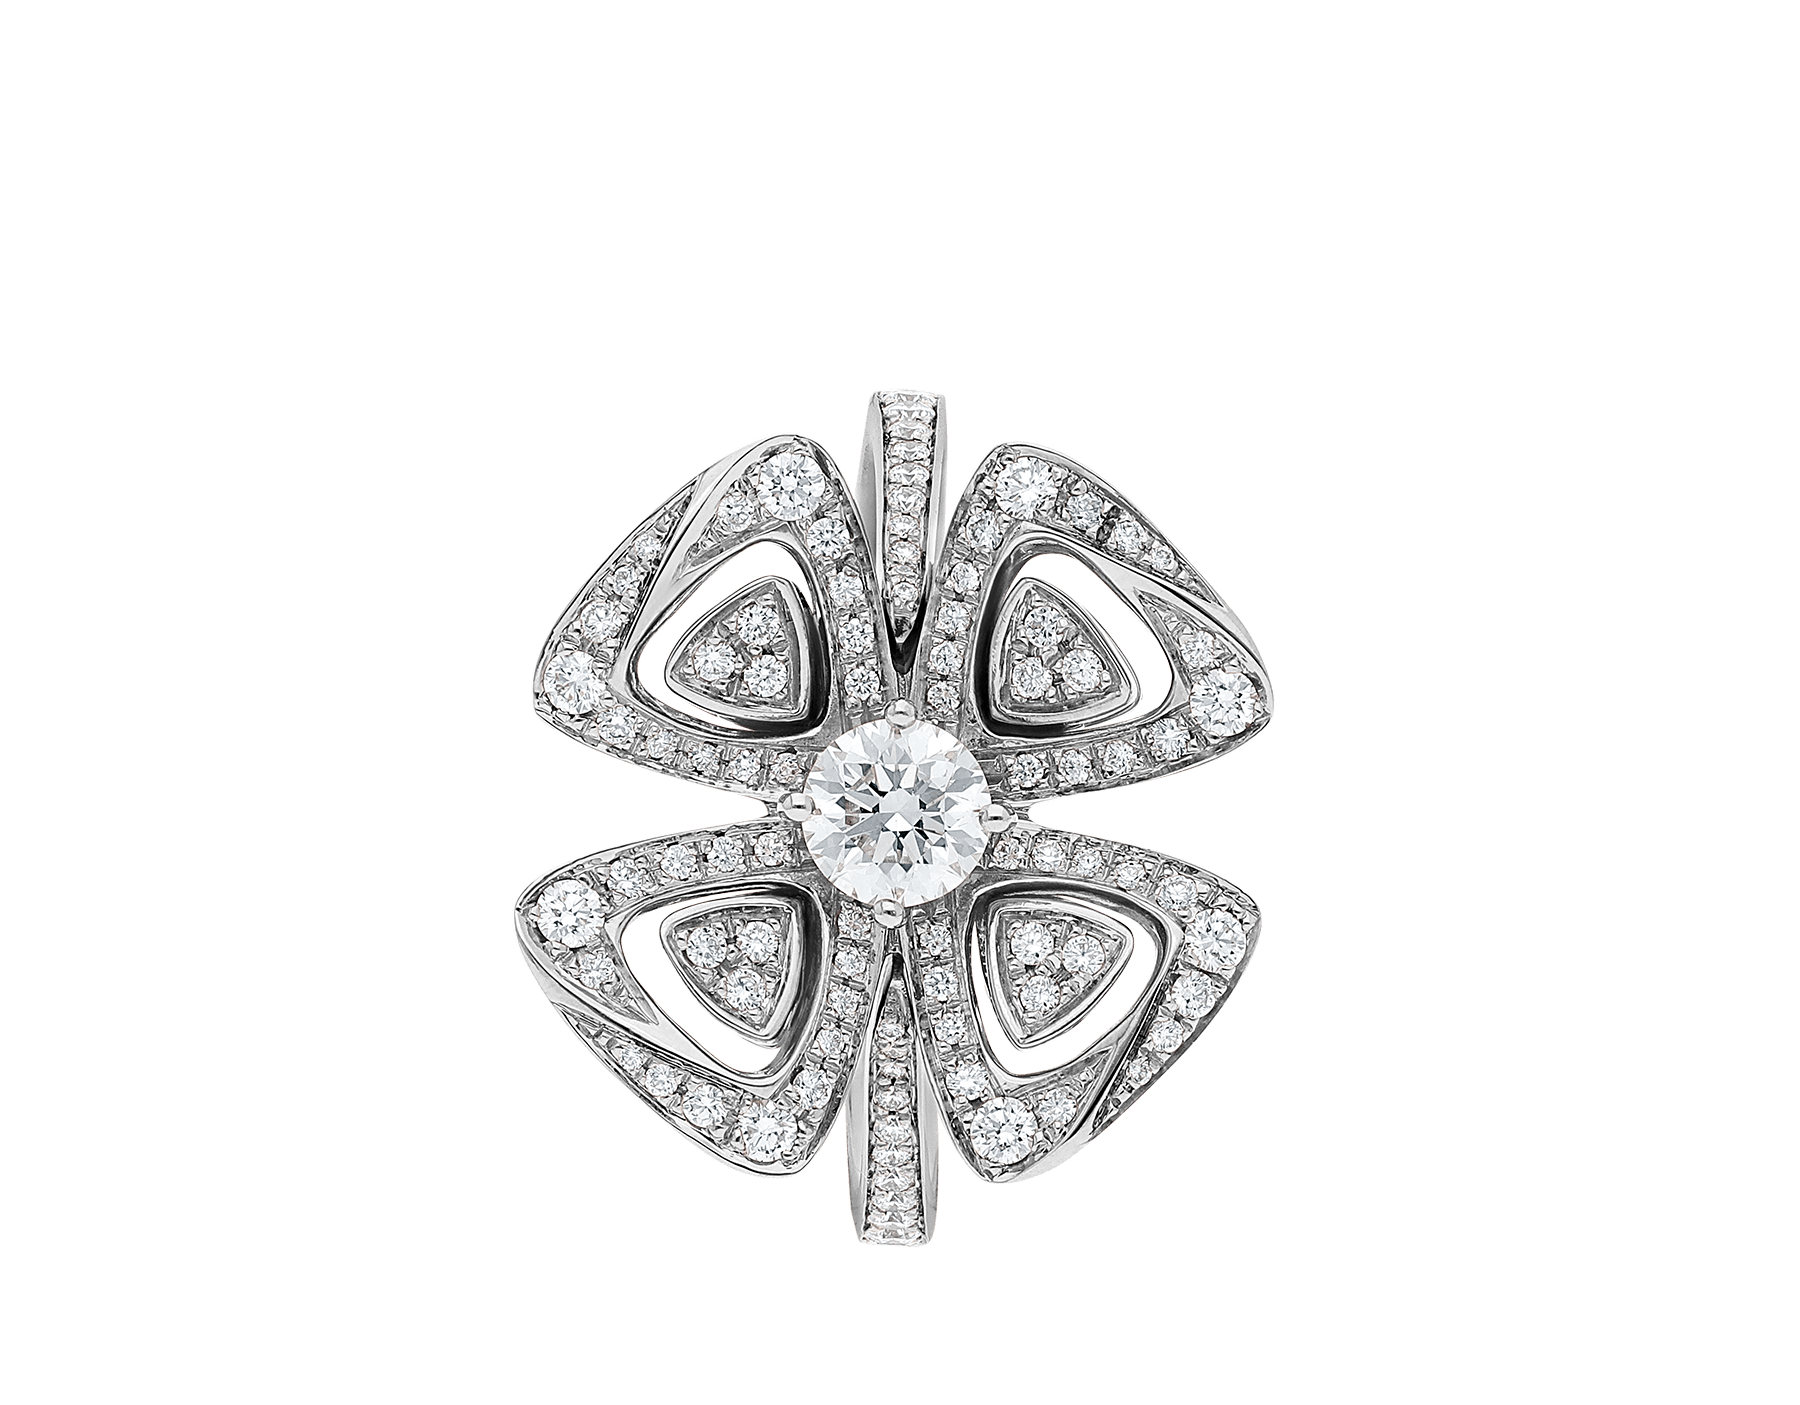 Fiorever 18 kt white gold ring set with a central diamond and pavé diamonds. AN858168 image 2